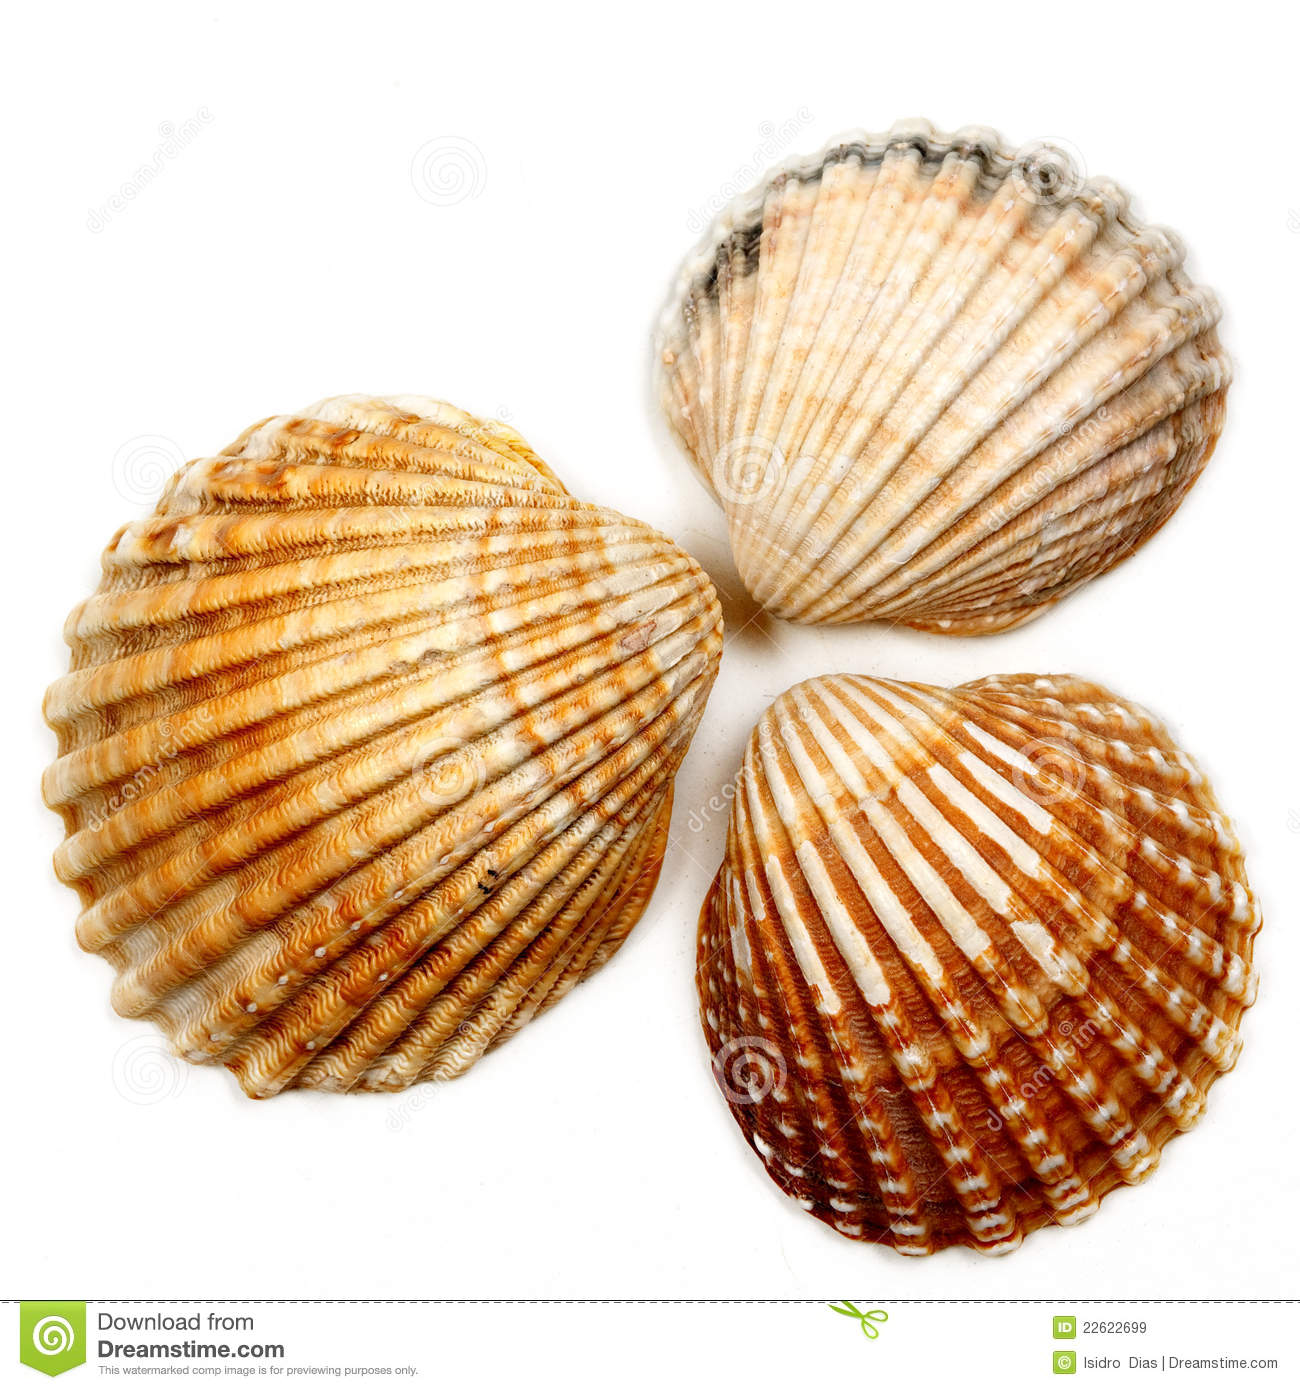 Seashells 04 Royalty Free Stock Images - Image: 22622699